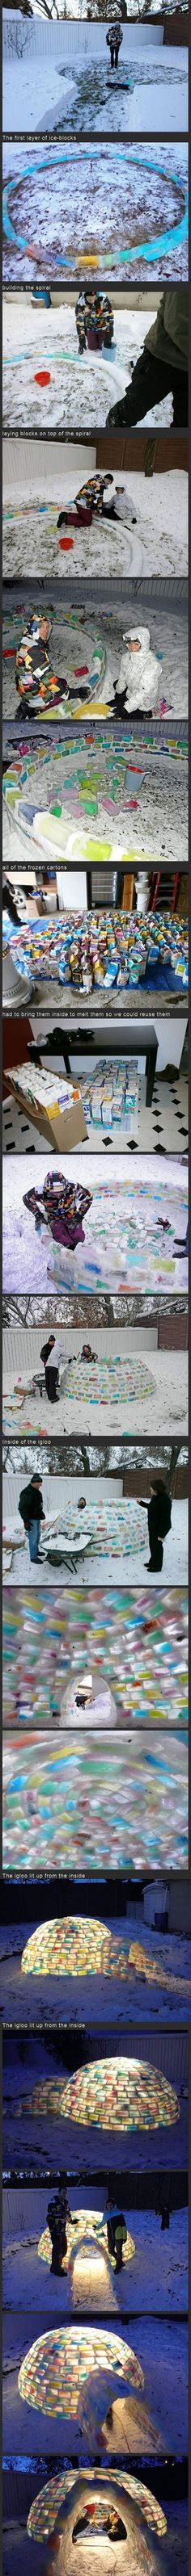 Rainbow igloo. awesome!